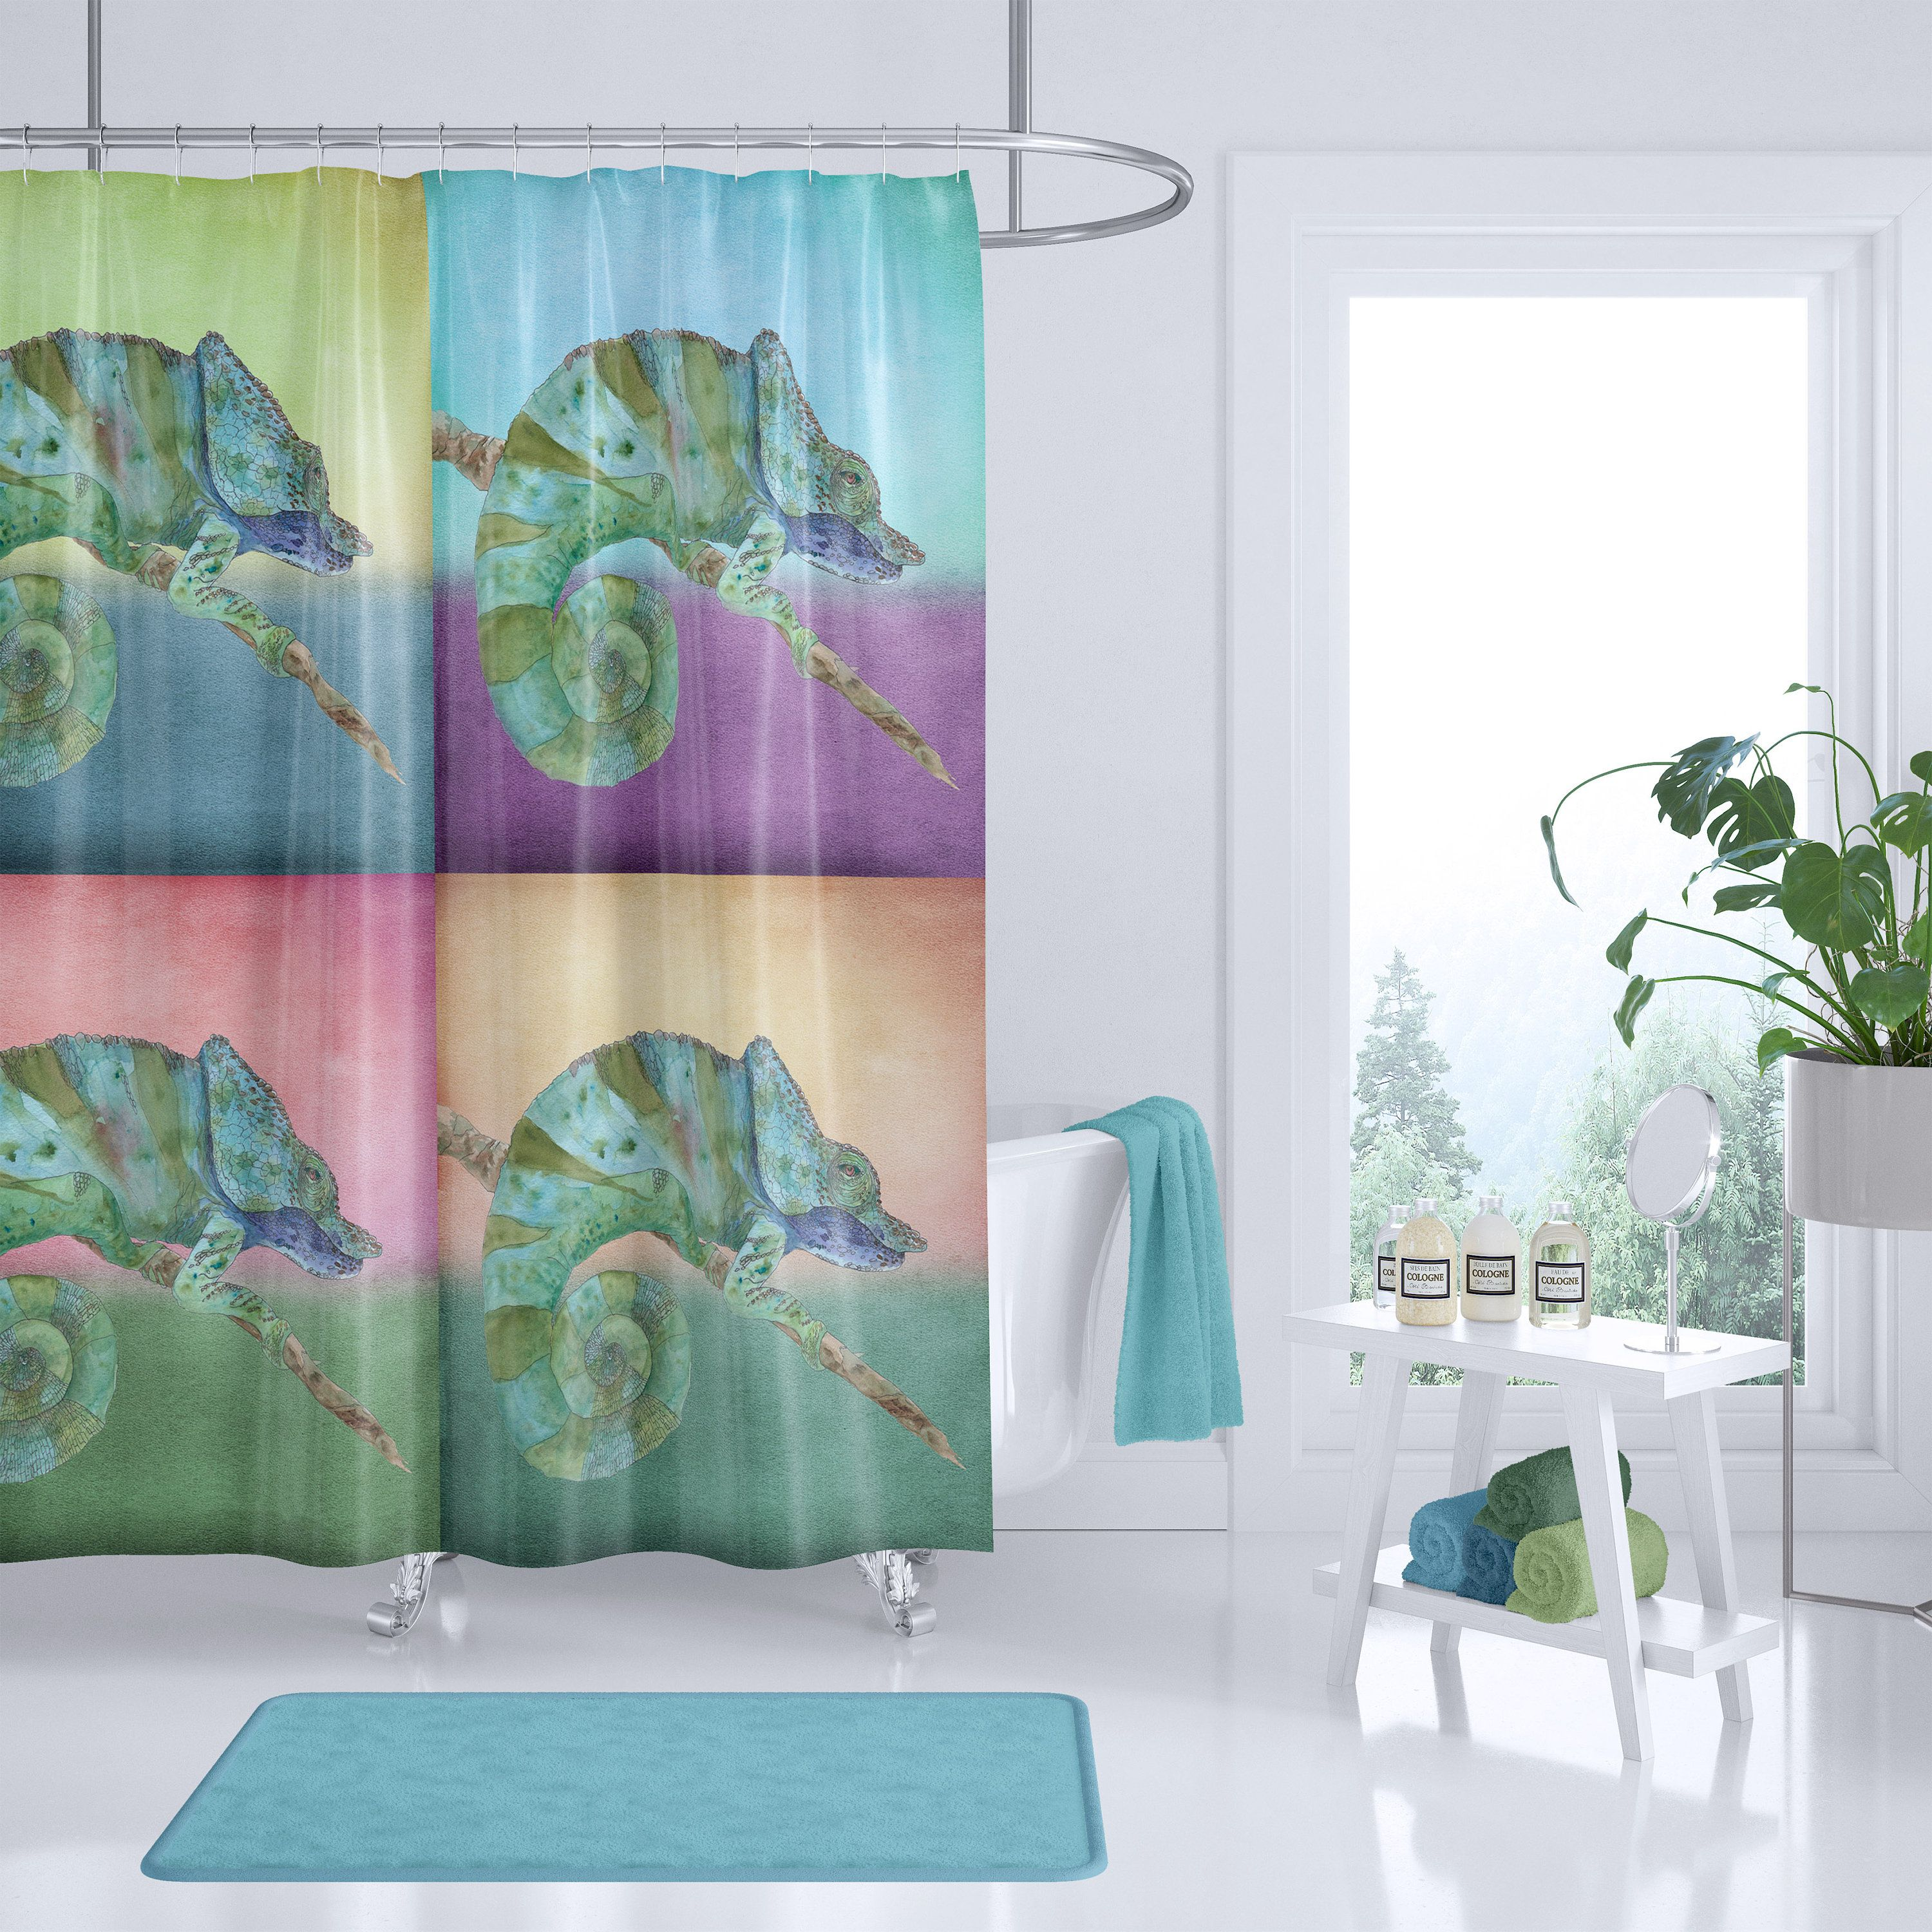 Chameleon Shower Curtain 4 Coloful Chameleons Illustration Green Teal And Peach Purple Lizard Reptile Zoo Curtains Printed Shower Curtain Shower Curtain